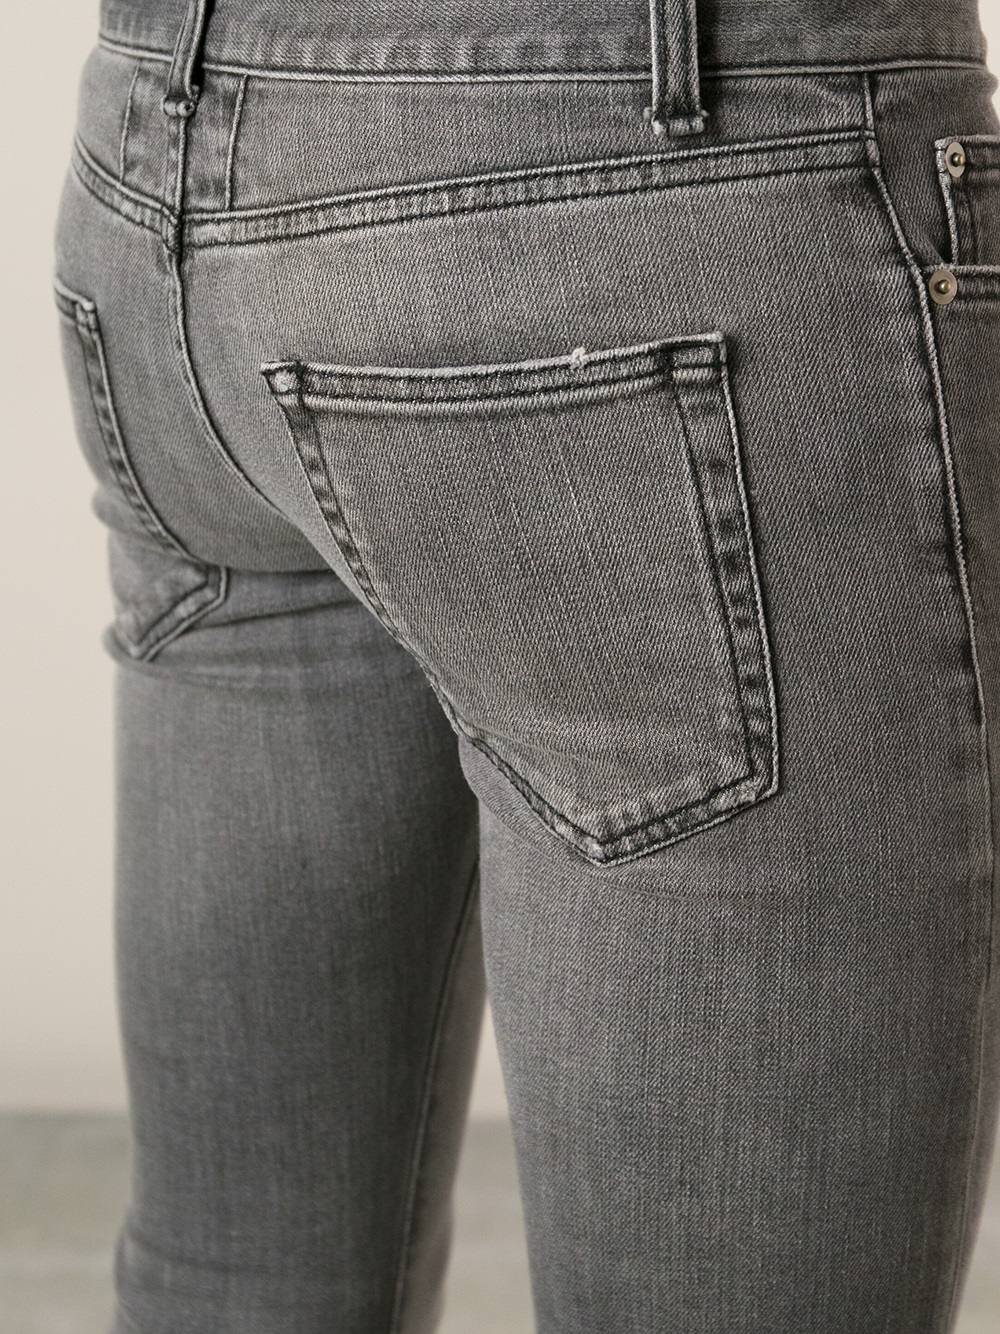 lyst  saint laurent stone washed jeans in gray for men